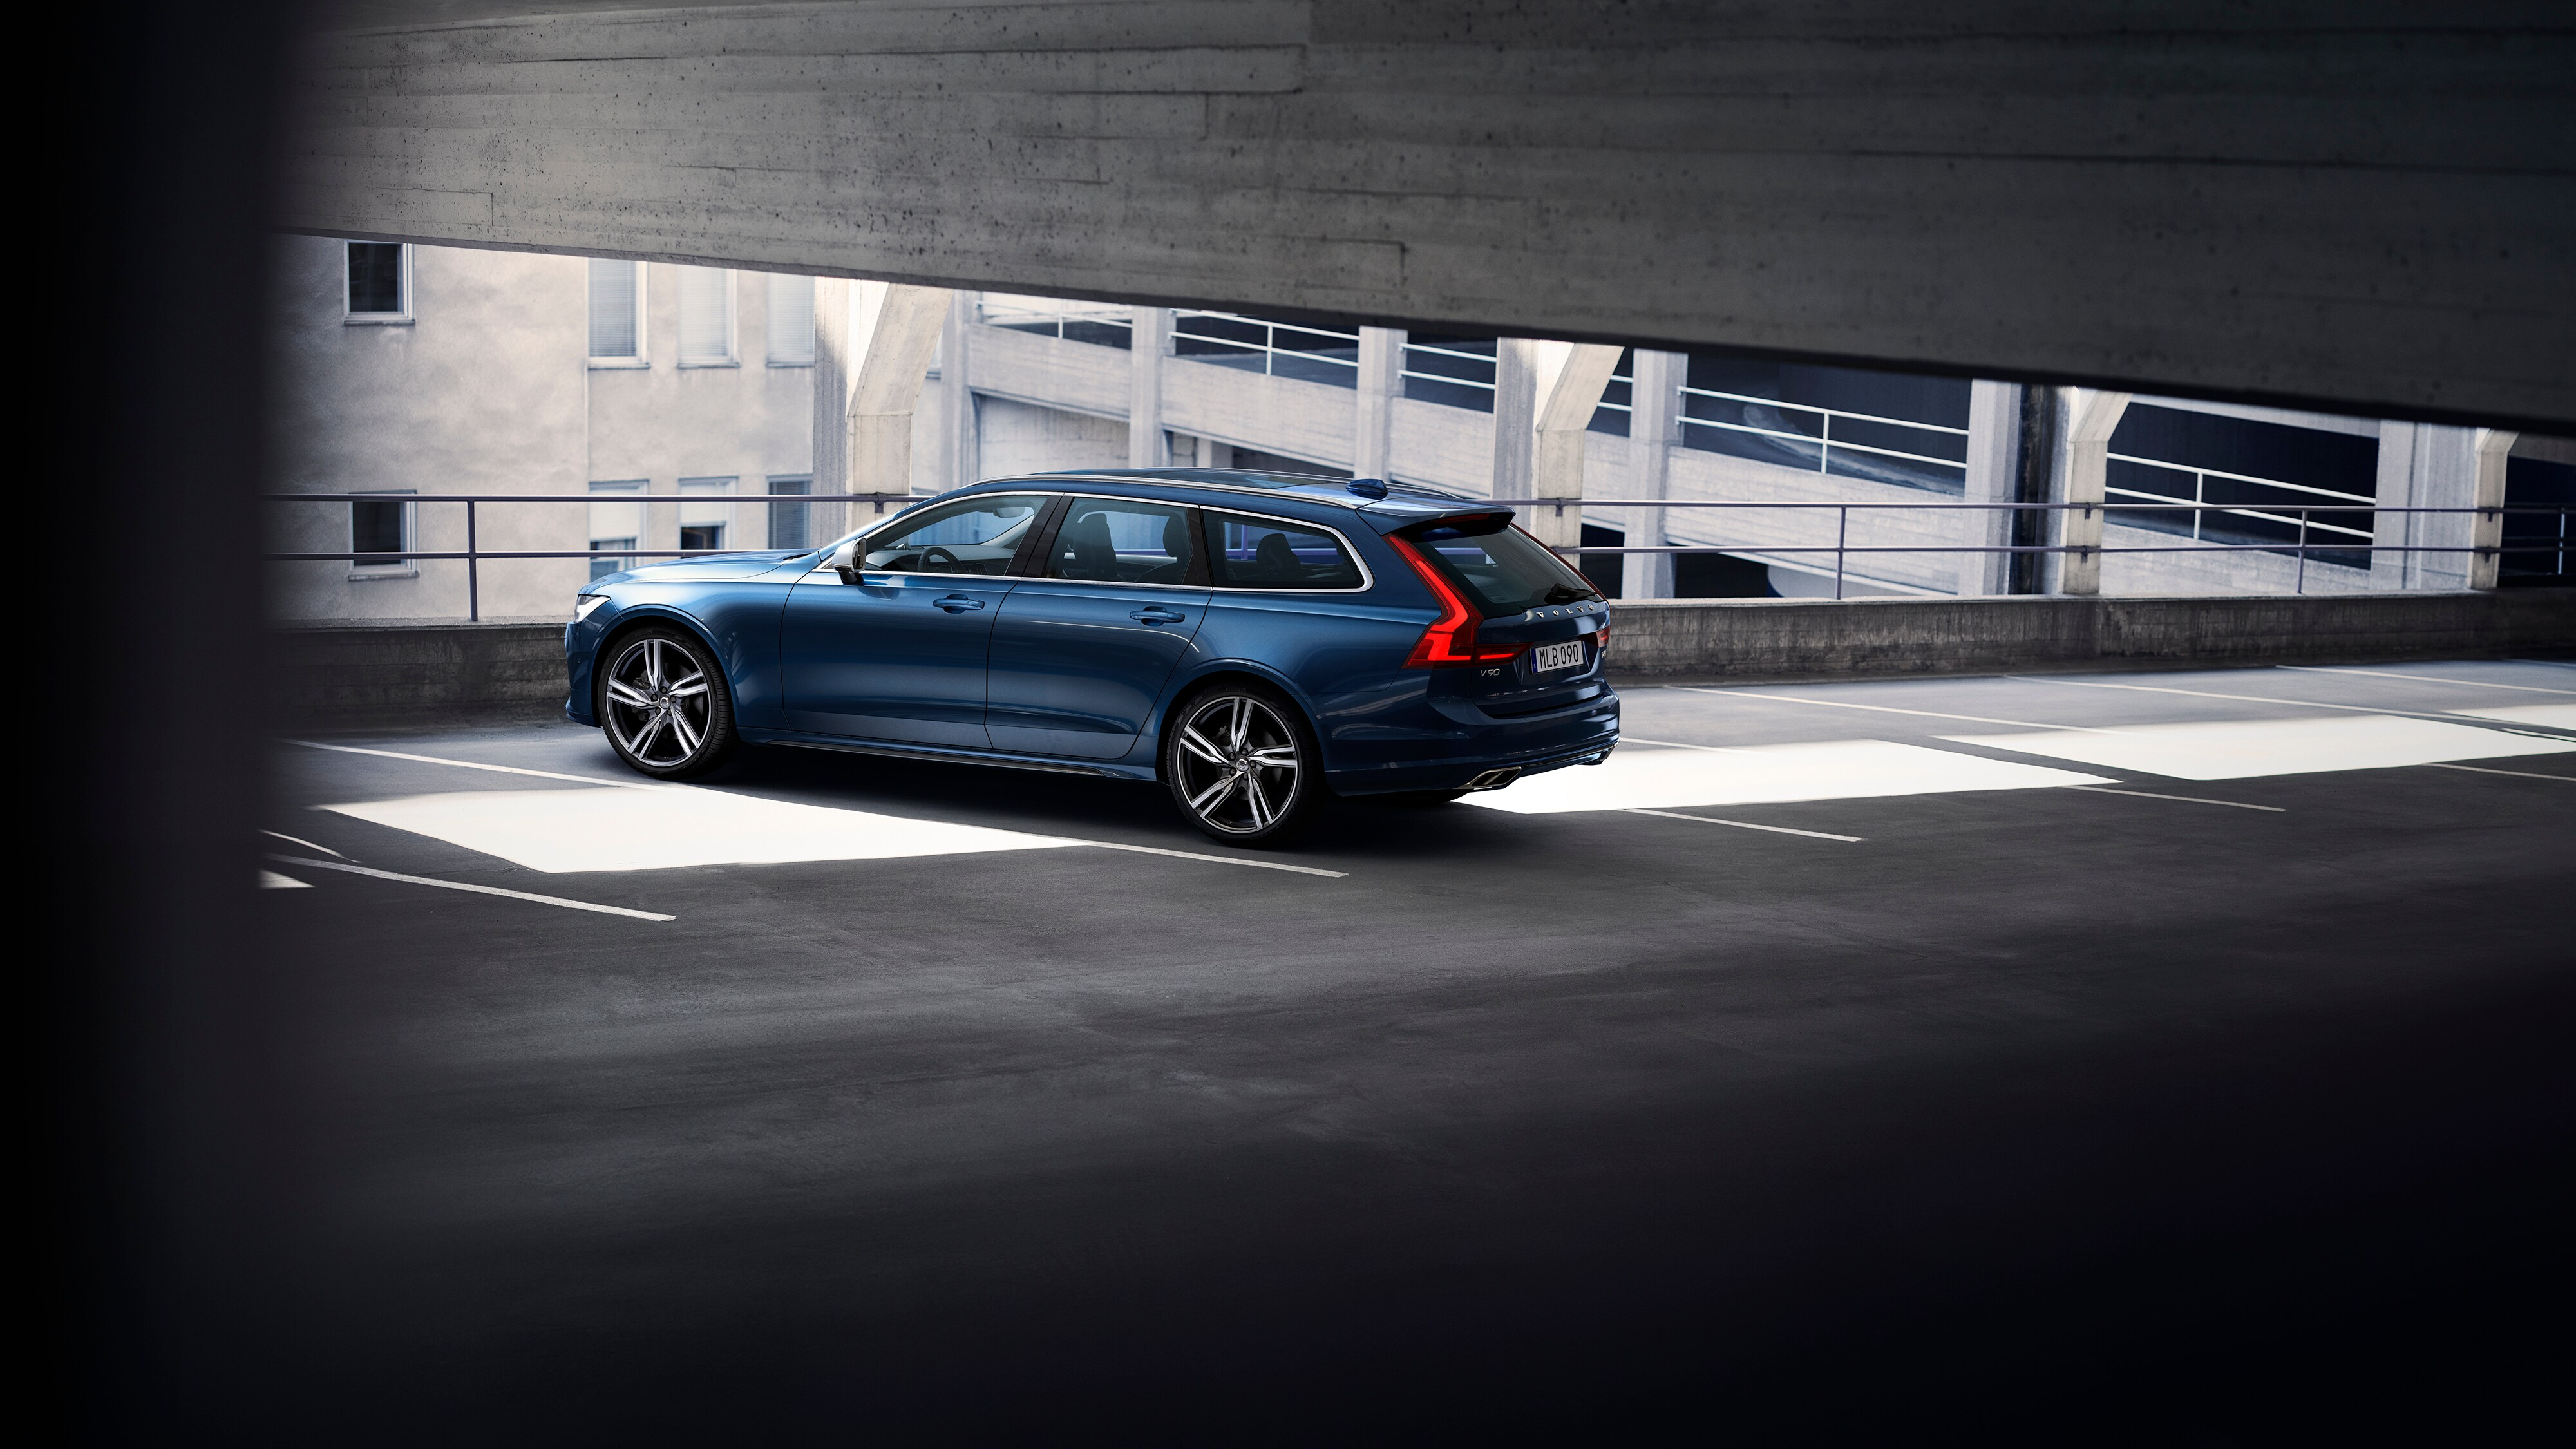 Side-rear view of Volvo V90 R-Design in multi-storey car park